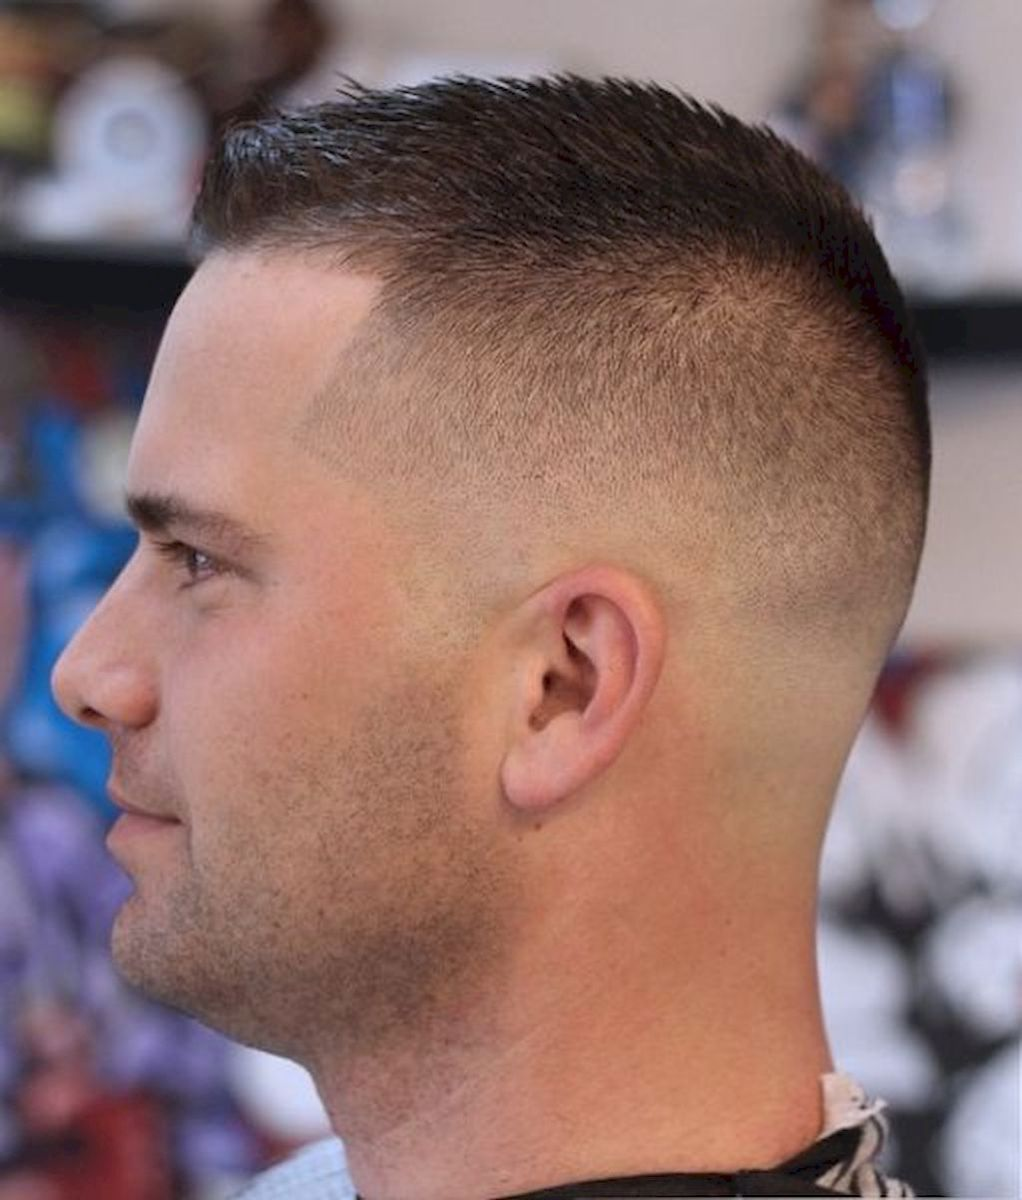 Short Haircuts For Men Fade Buzz Cuts 6 In 2018 Austin Hair Cuts